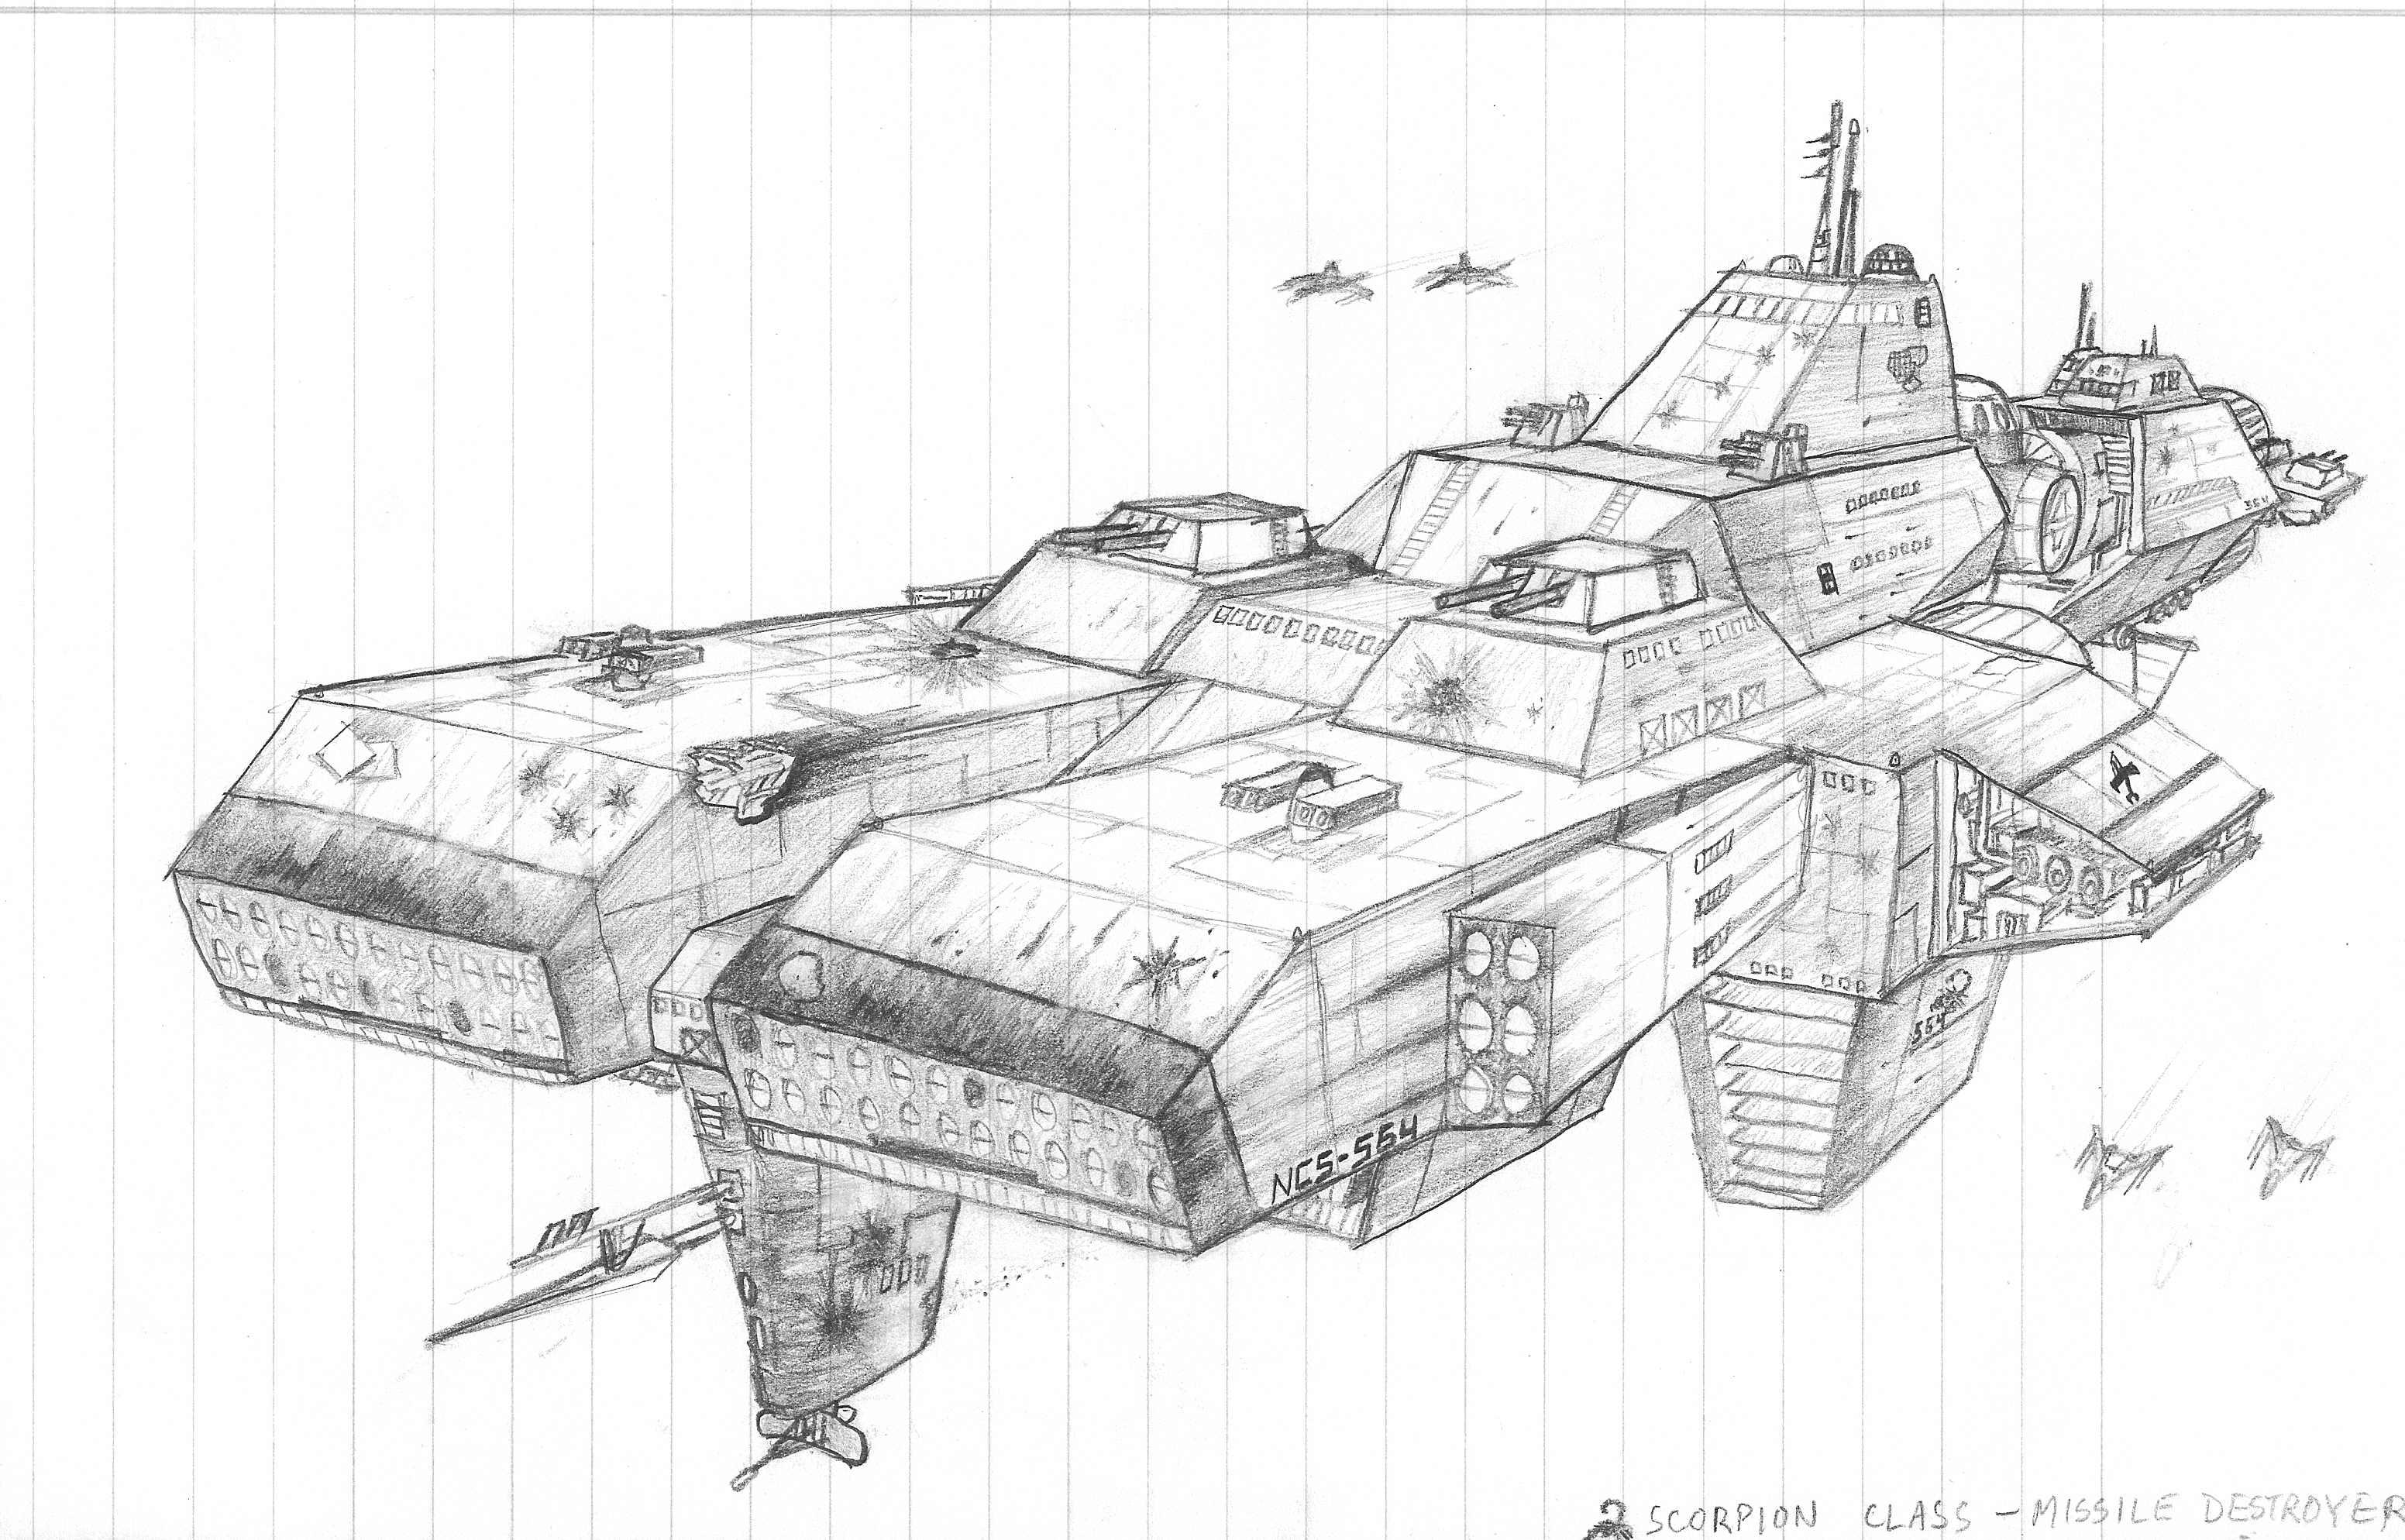 Missile Drawing Scorpion Missil...